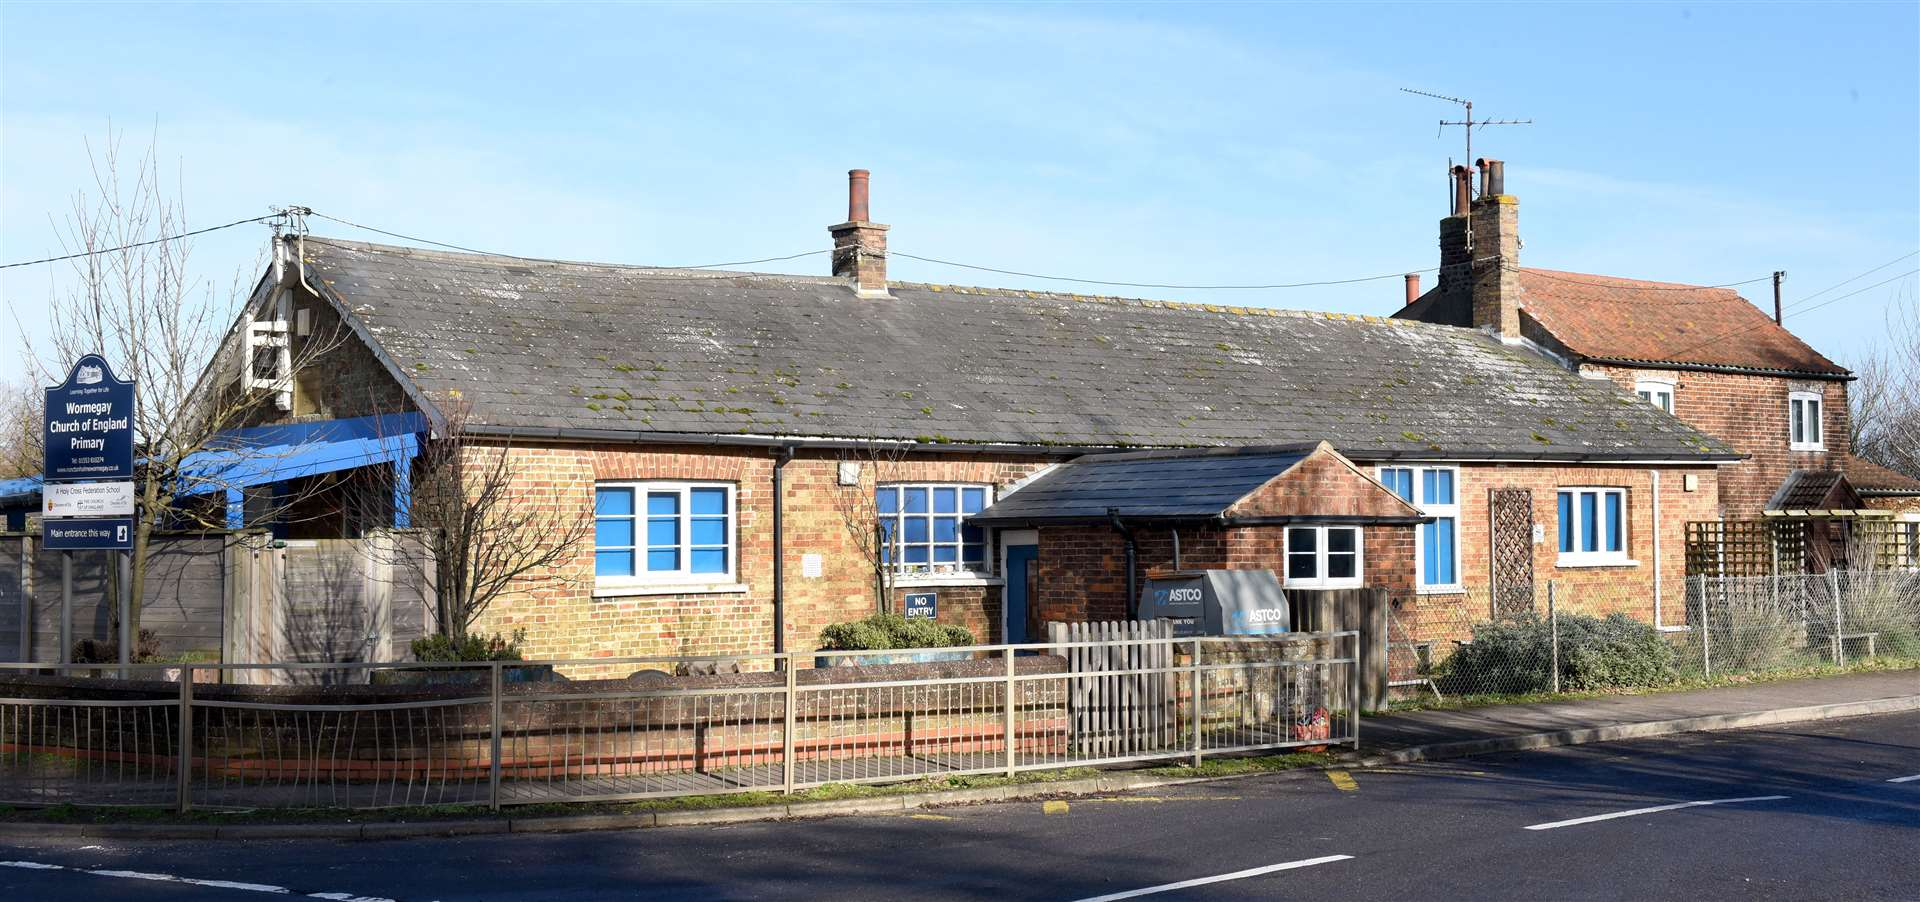 GV Picture of Wormegay Church of England Primary School. (44271139)